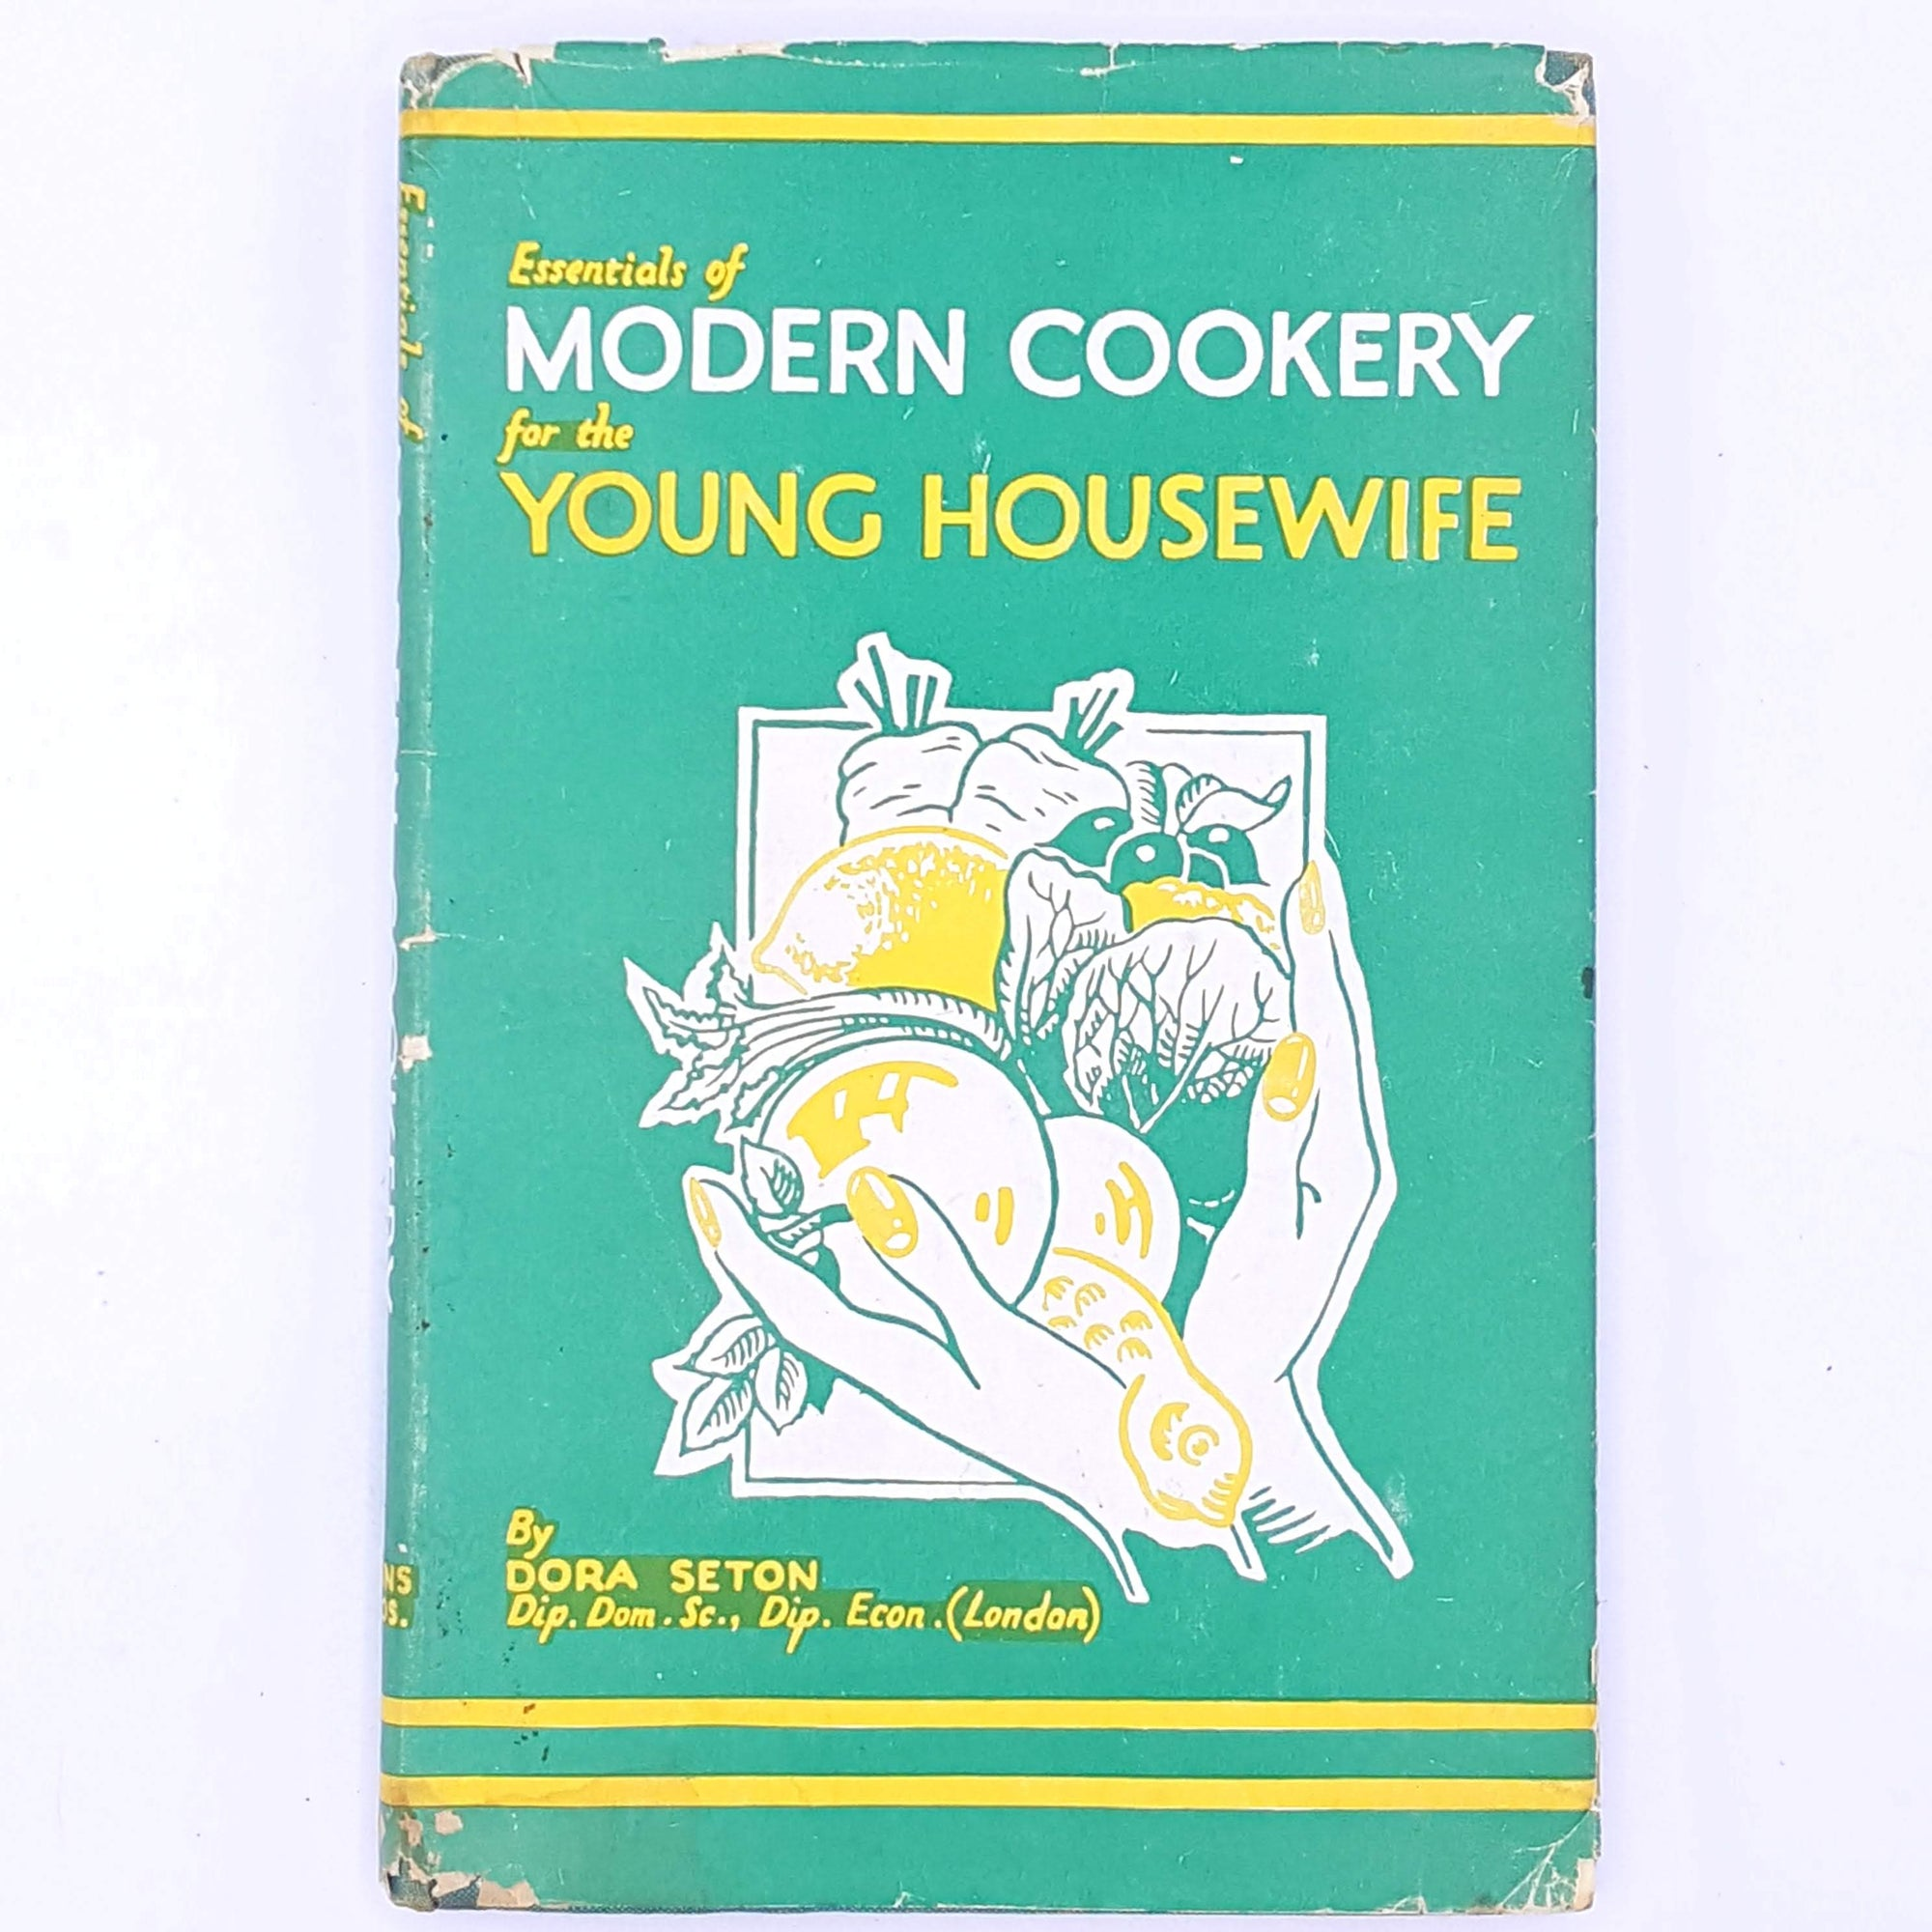 Essentials of Modern Cookery for the Young Housewife